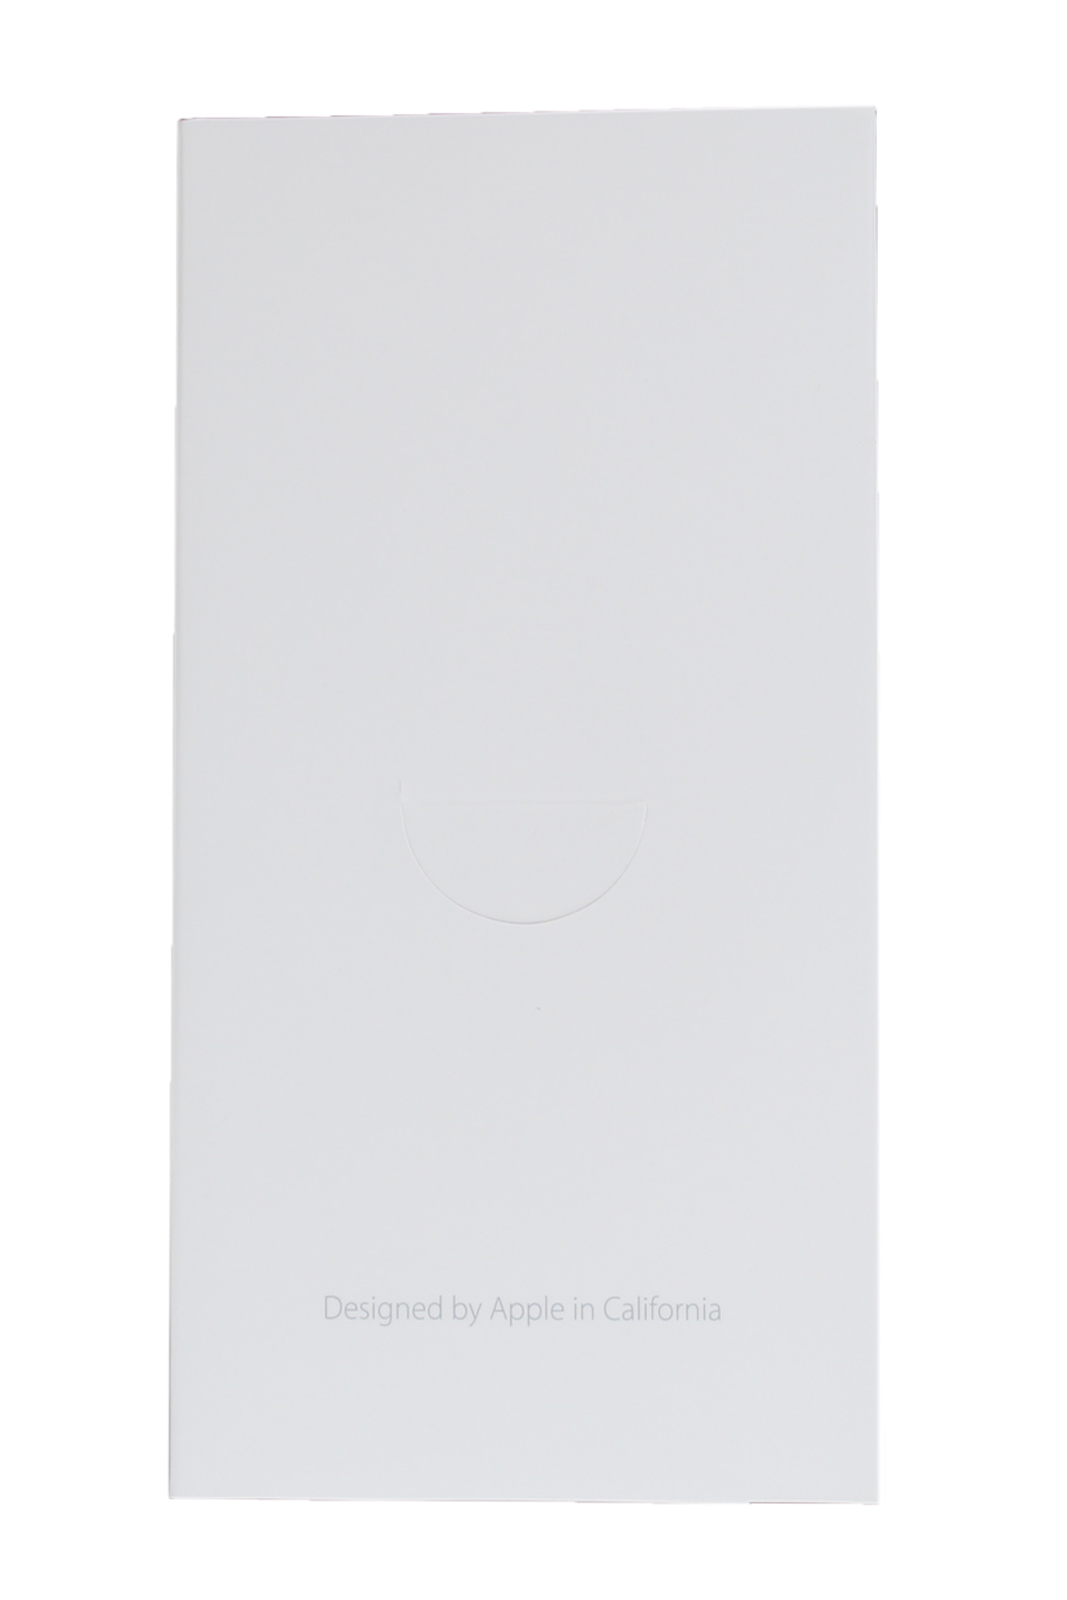 official apple iphone 5s quick start manual with sim eject